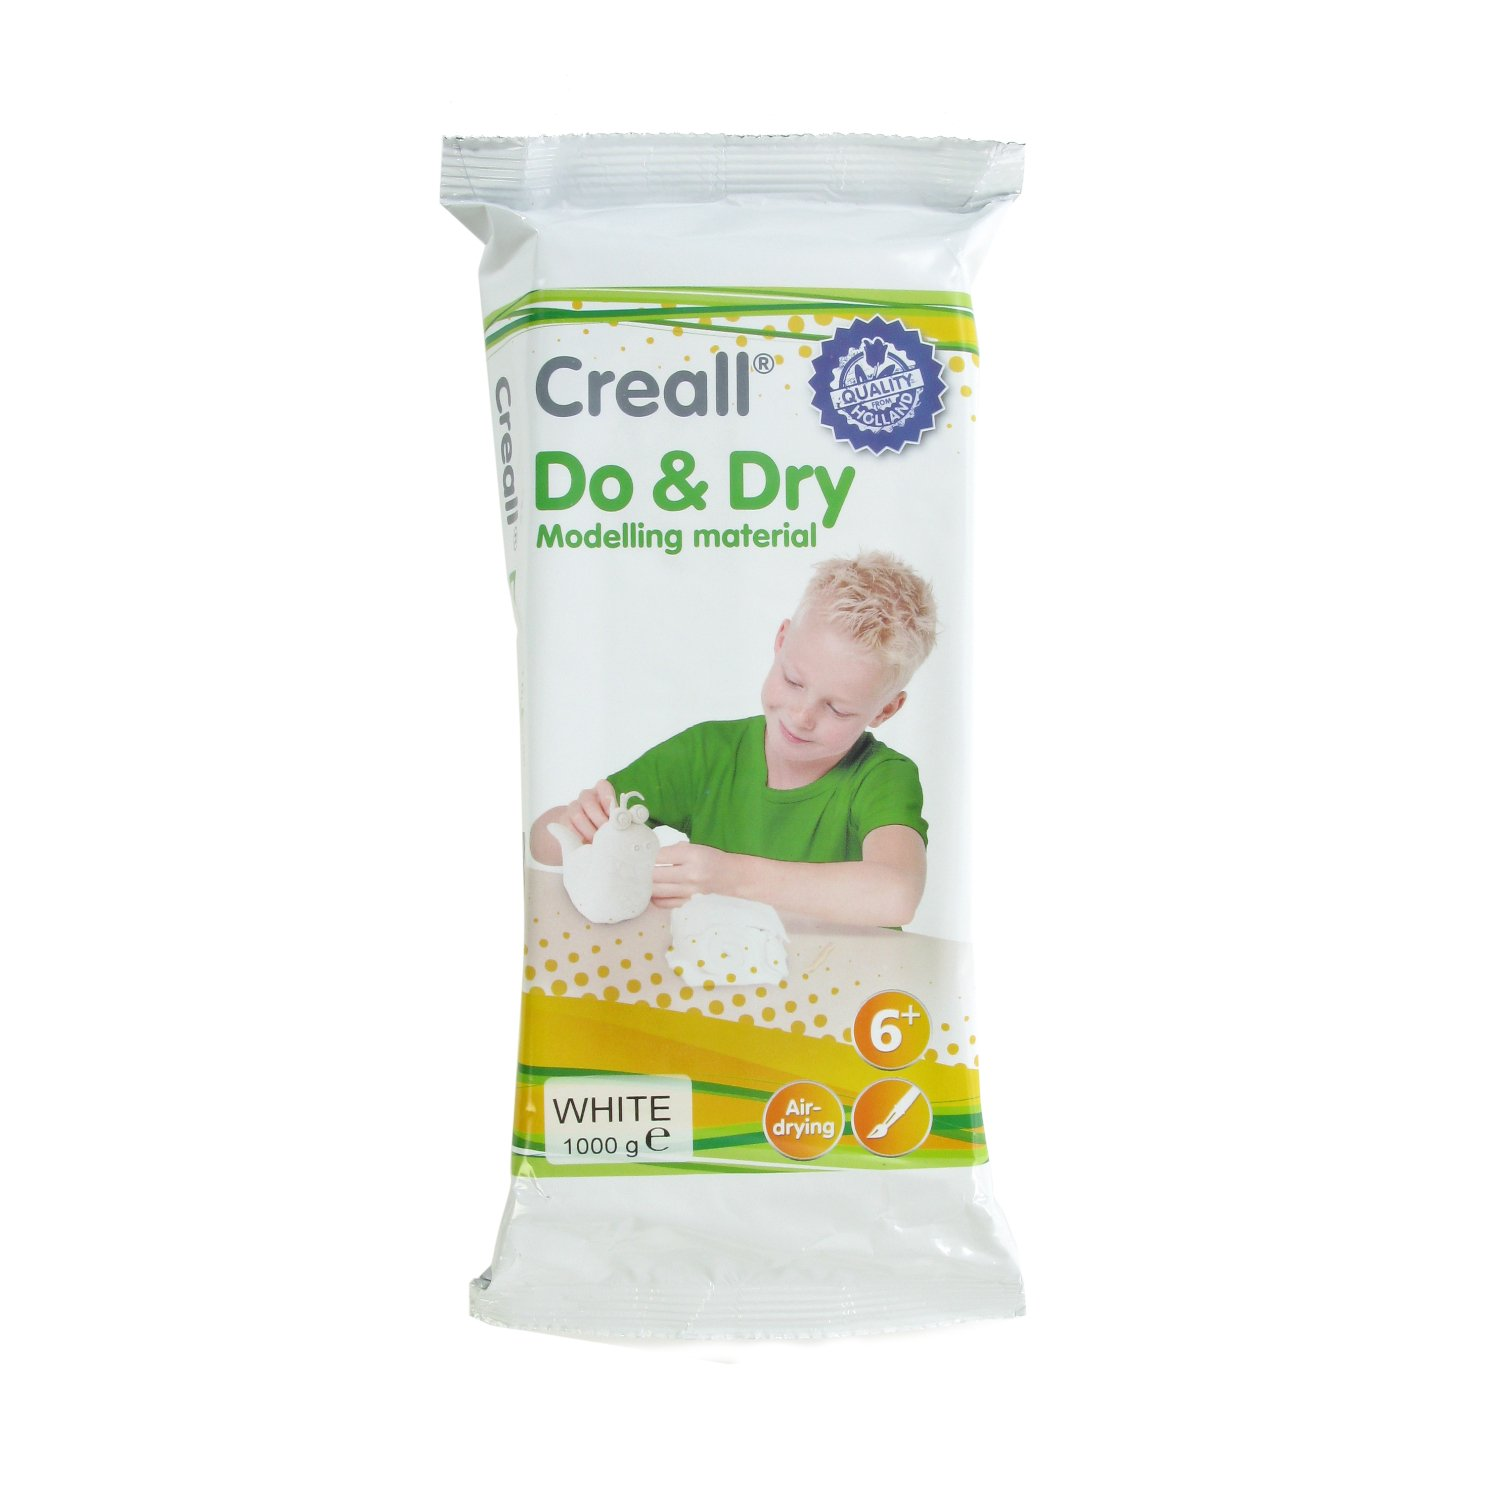 American Educational Products A-26000 Creall Do and Dry Modelling Material, Regular, 1000 g, White